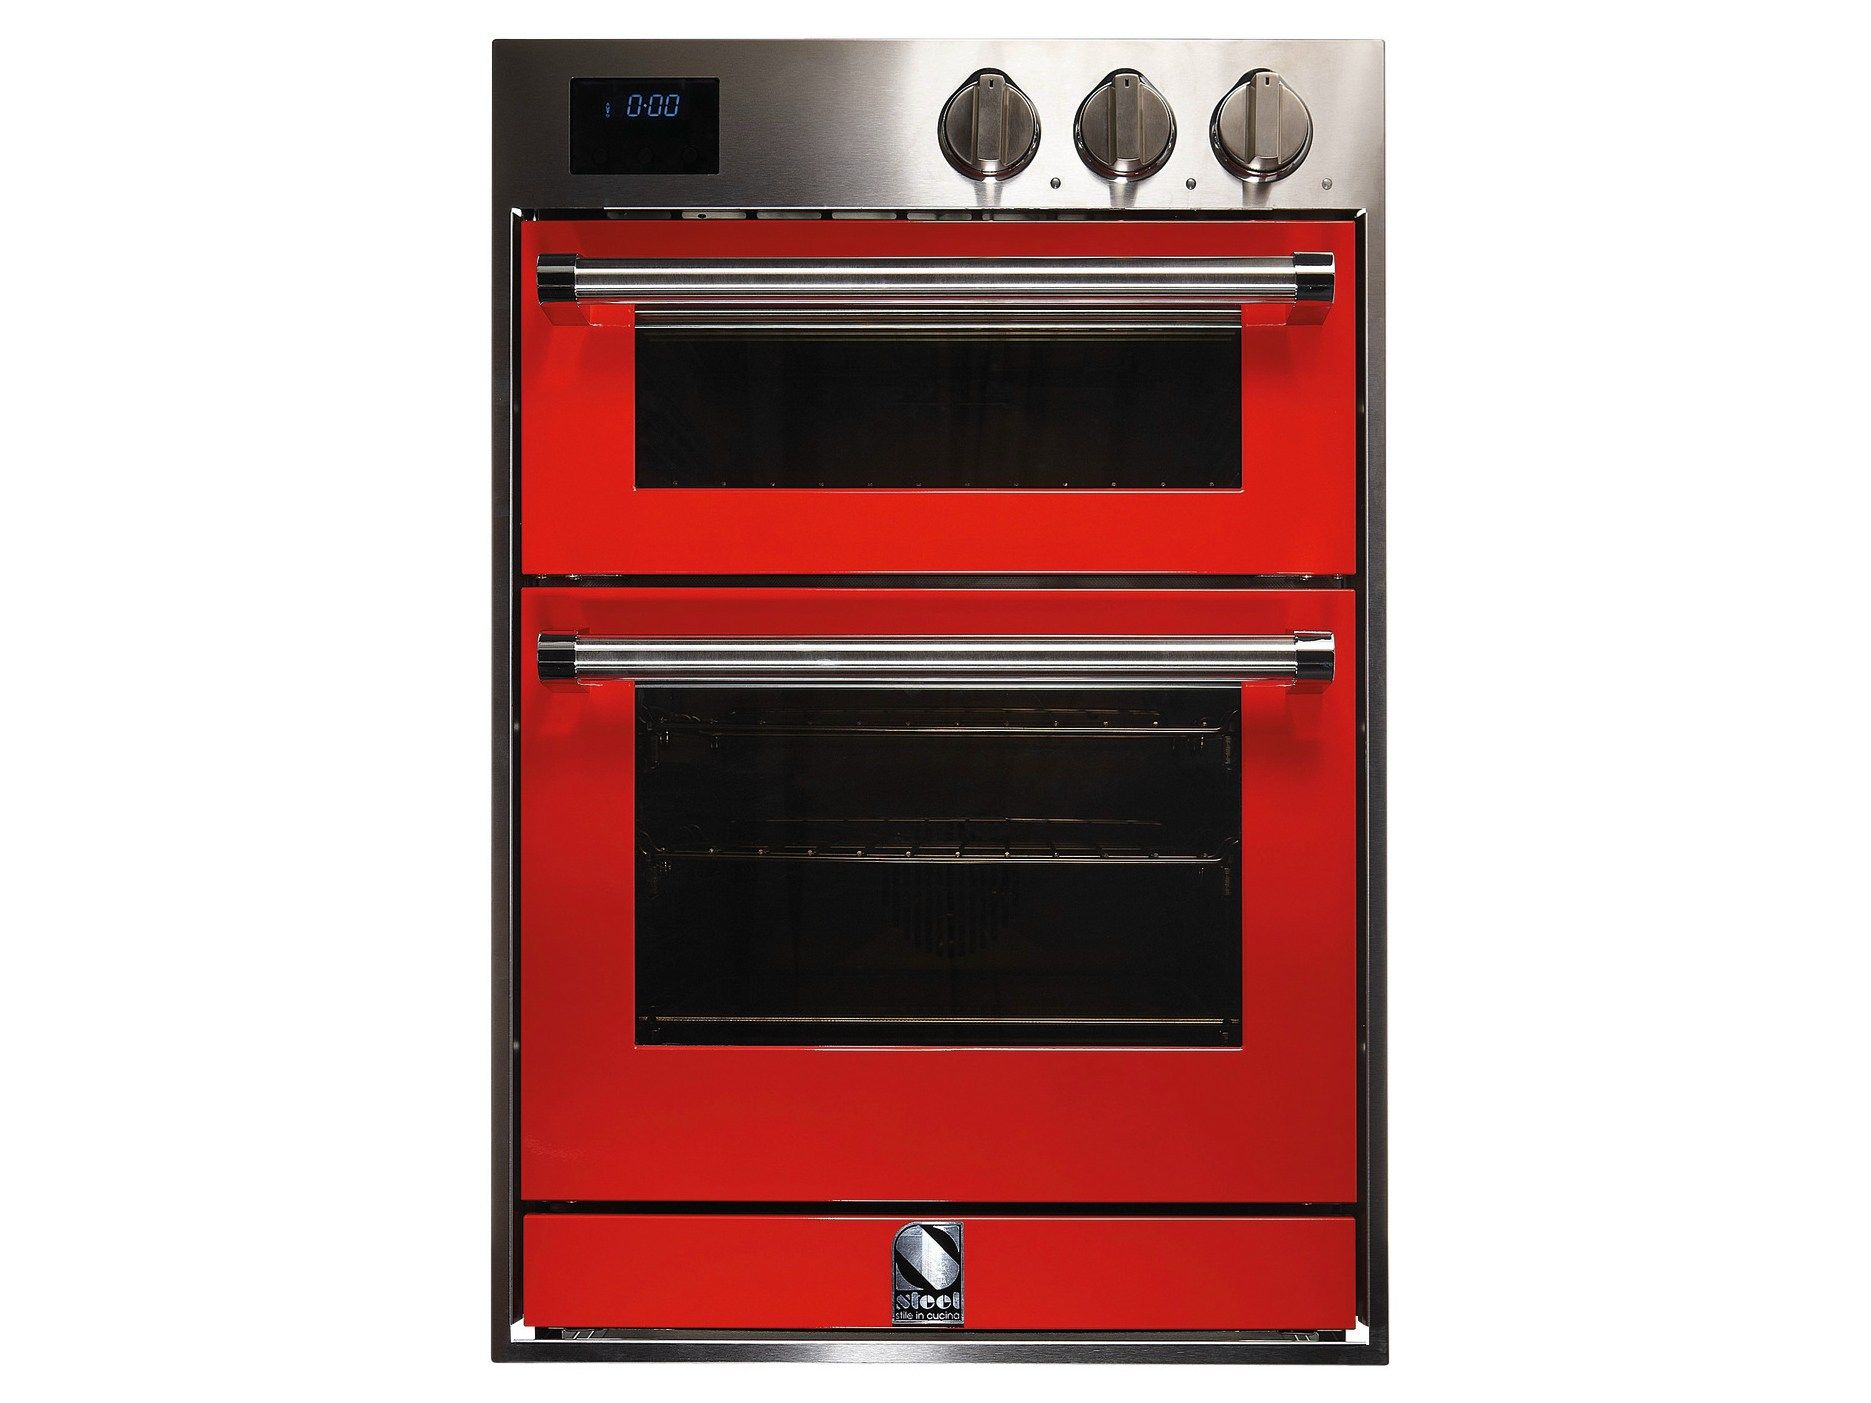 Electric kitchen stoves  Steel Cucina wall oven Genesi double  possible third oven to go